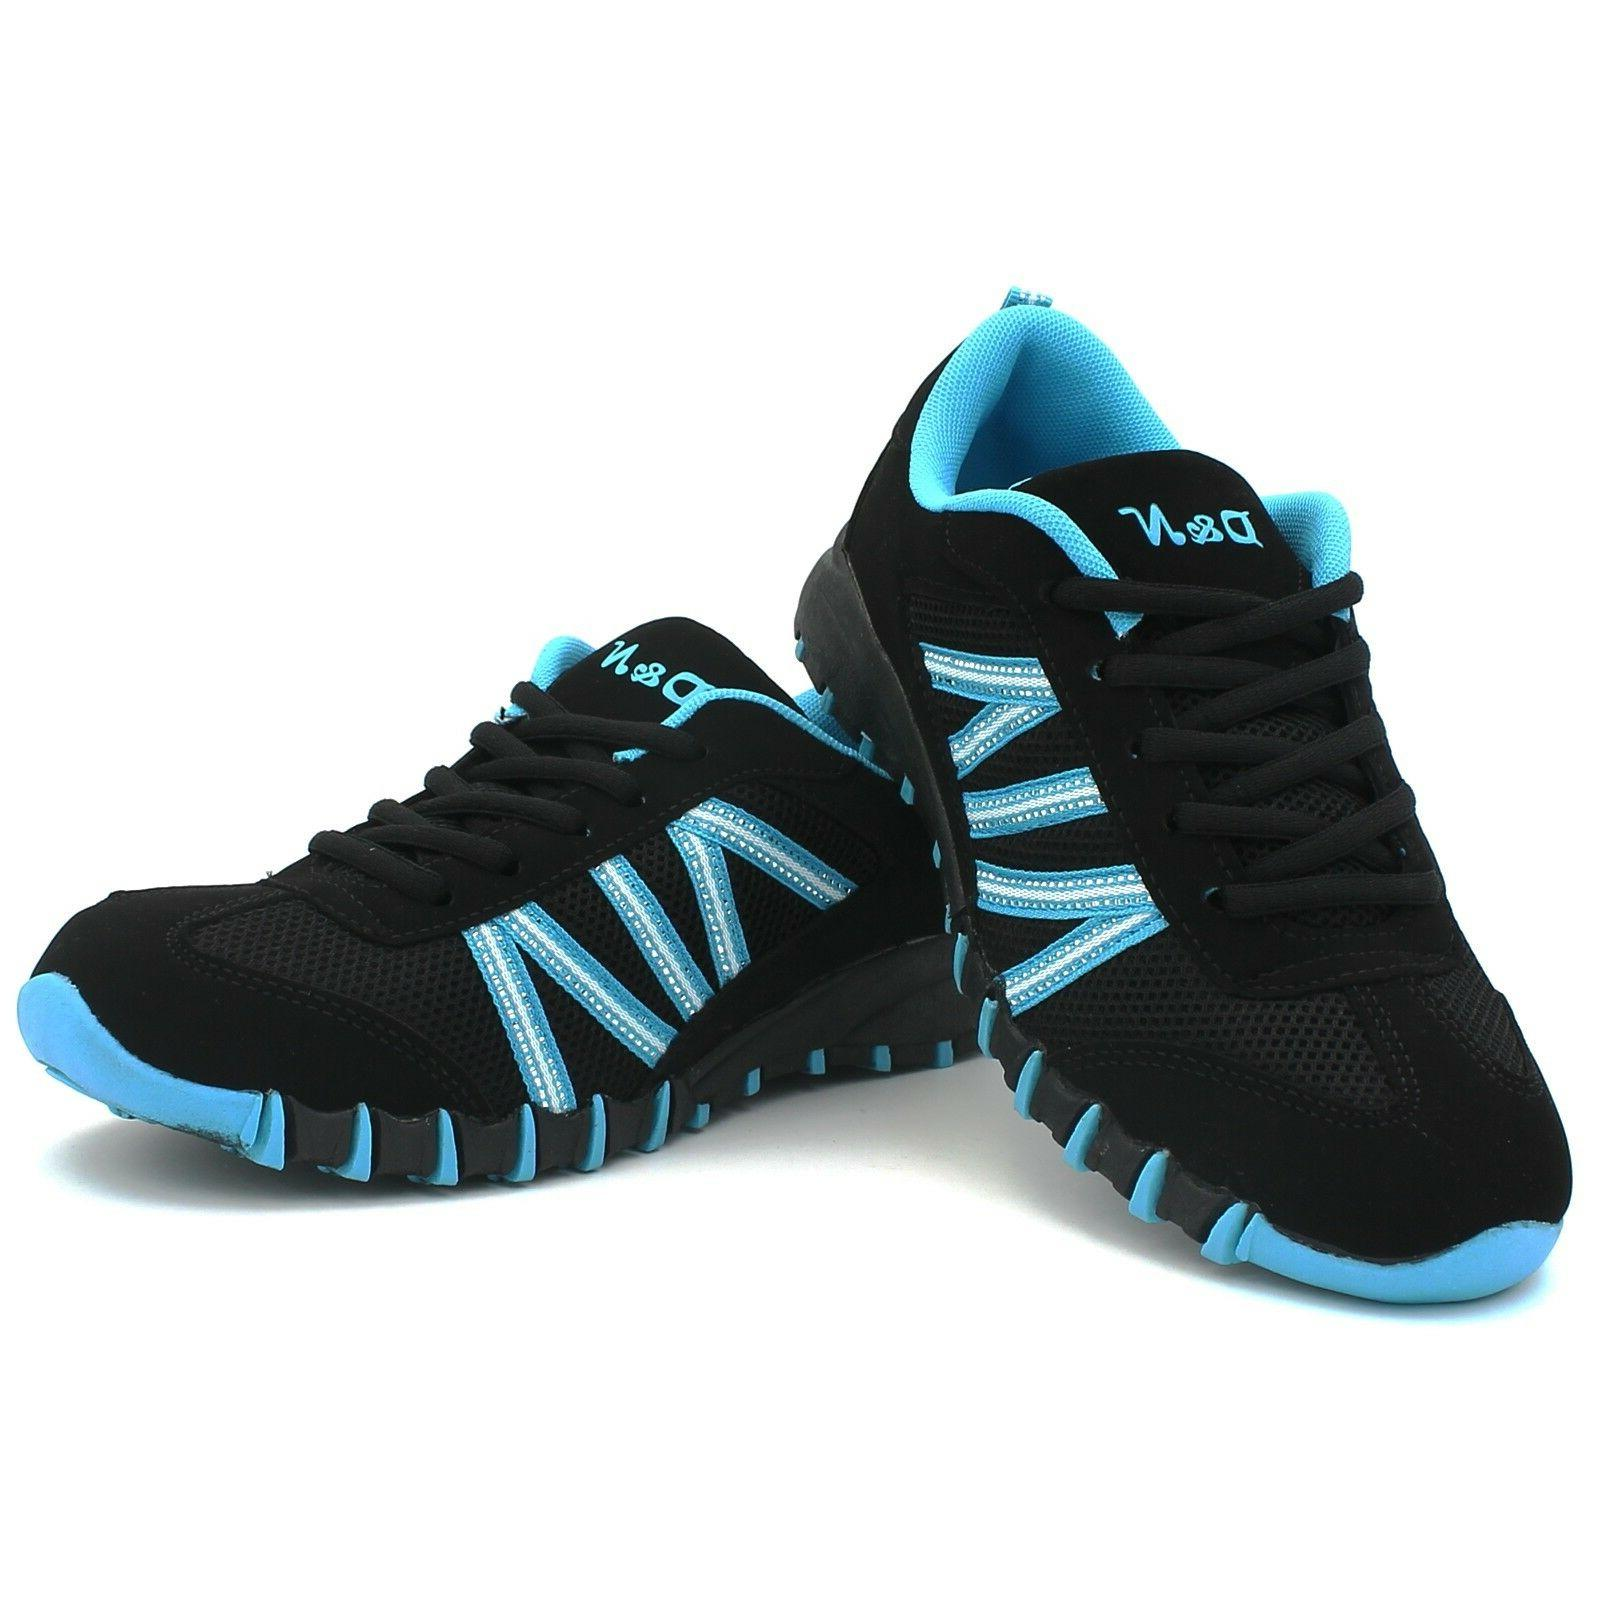 Women's Sneaker Athletic Tennis Shoes Lace-Up Suede